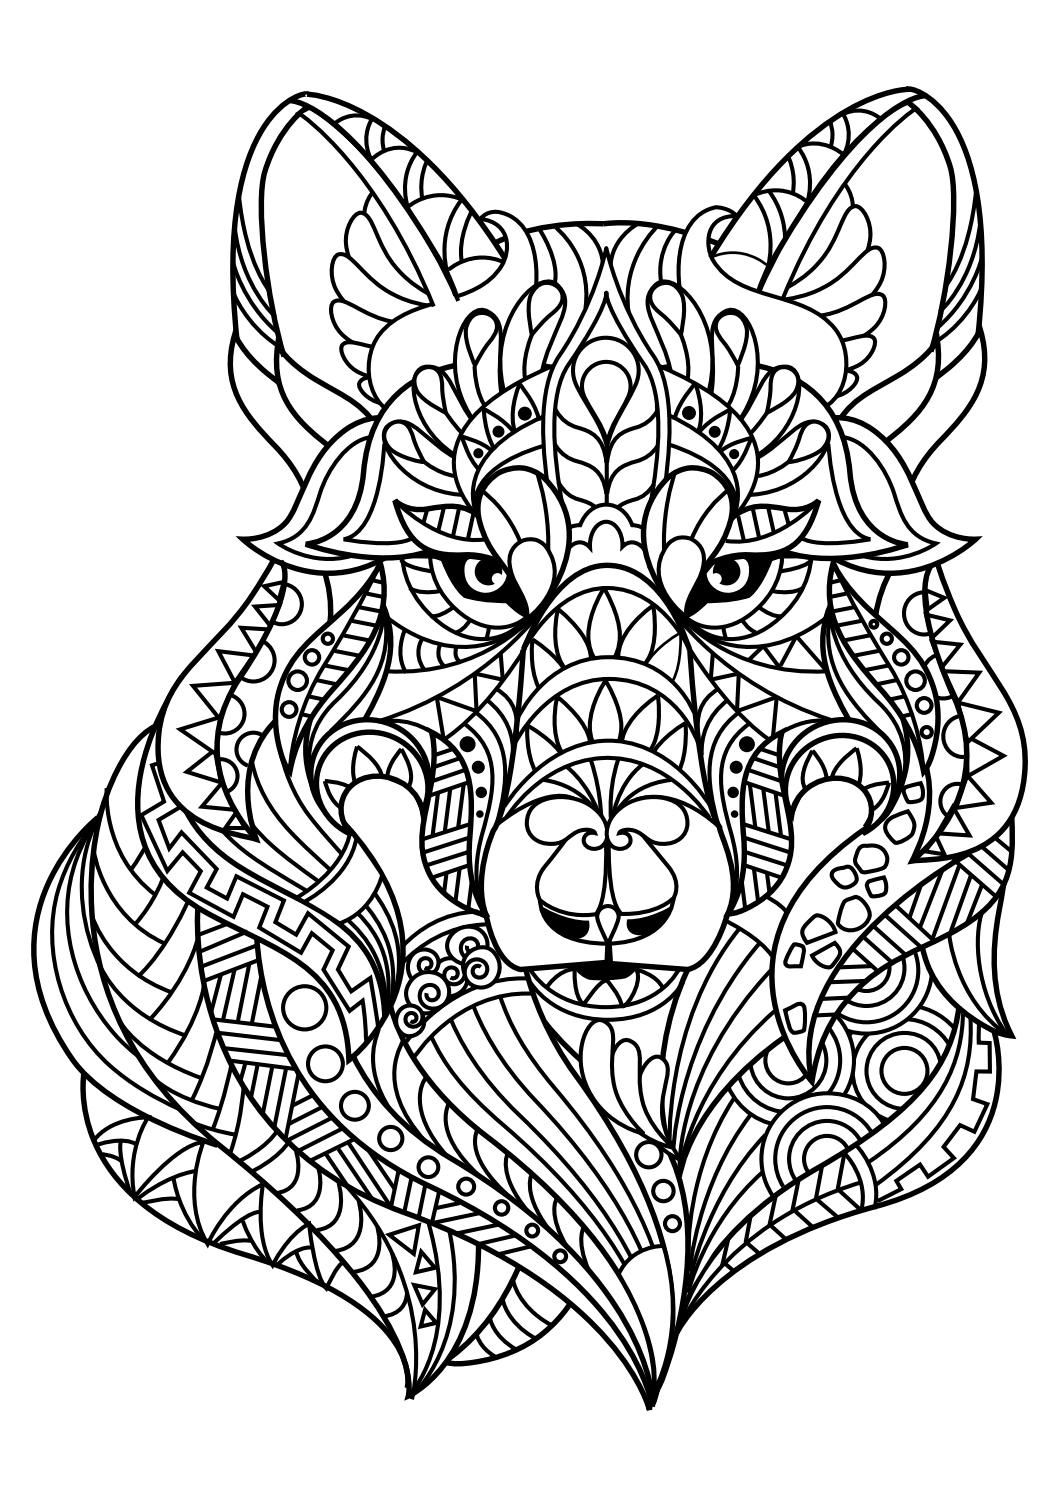 Animal coloring pages pdf   Horse coloring pages, Dog ...   free printable animal mandala coloring pages for adults